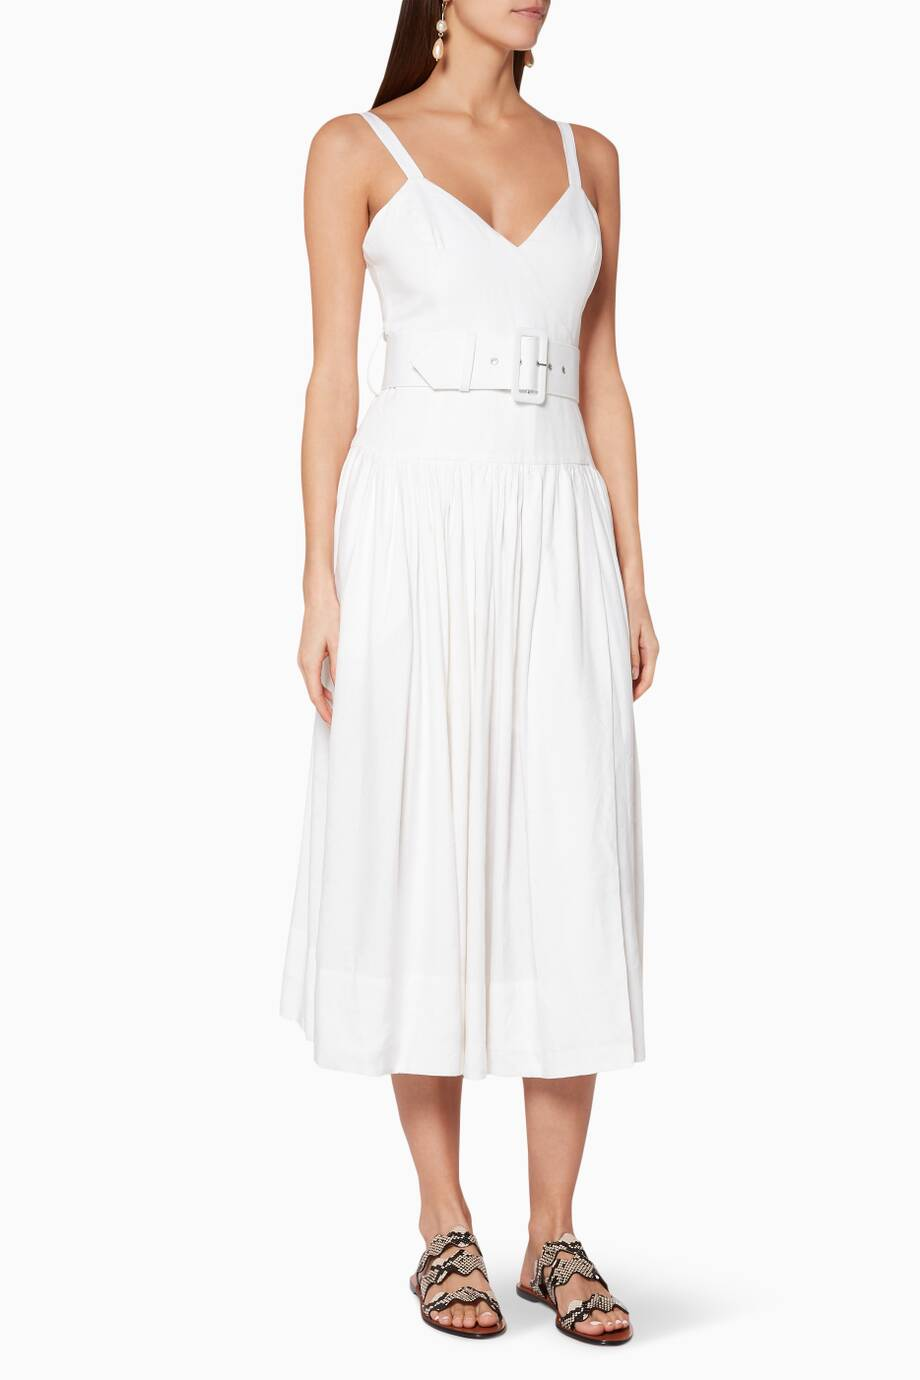 457cb9494d Shop Luxury SHONA JOY White Gaia Linen Midi Dress